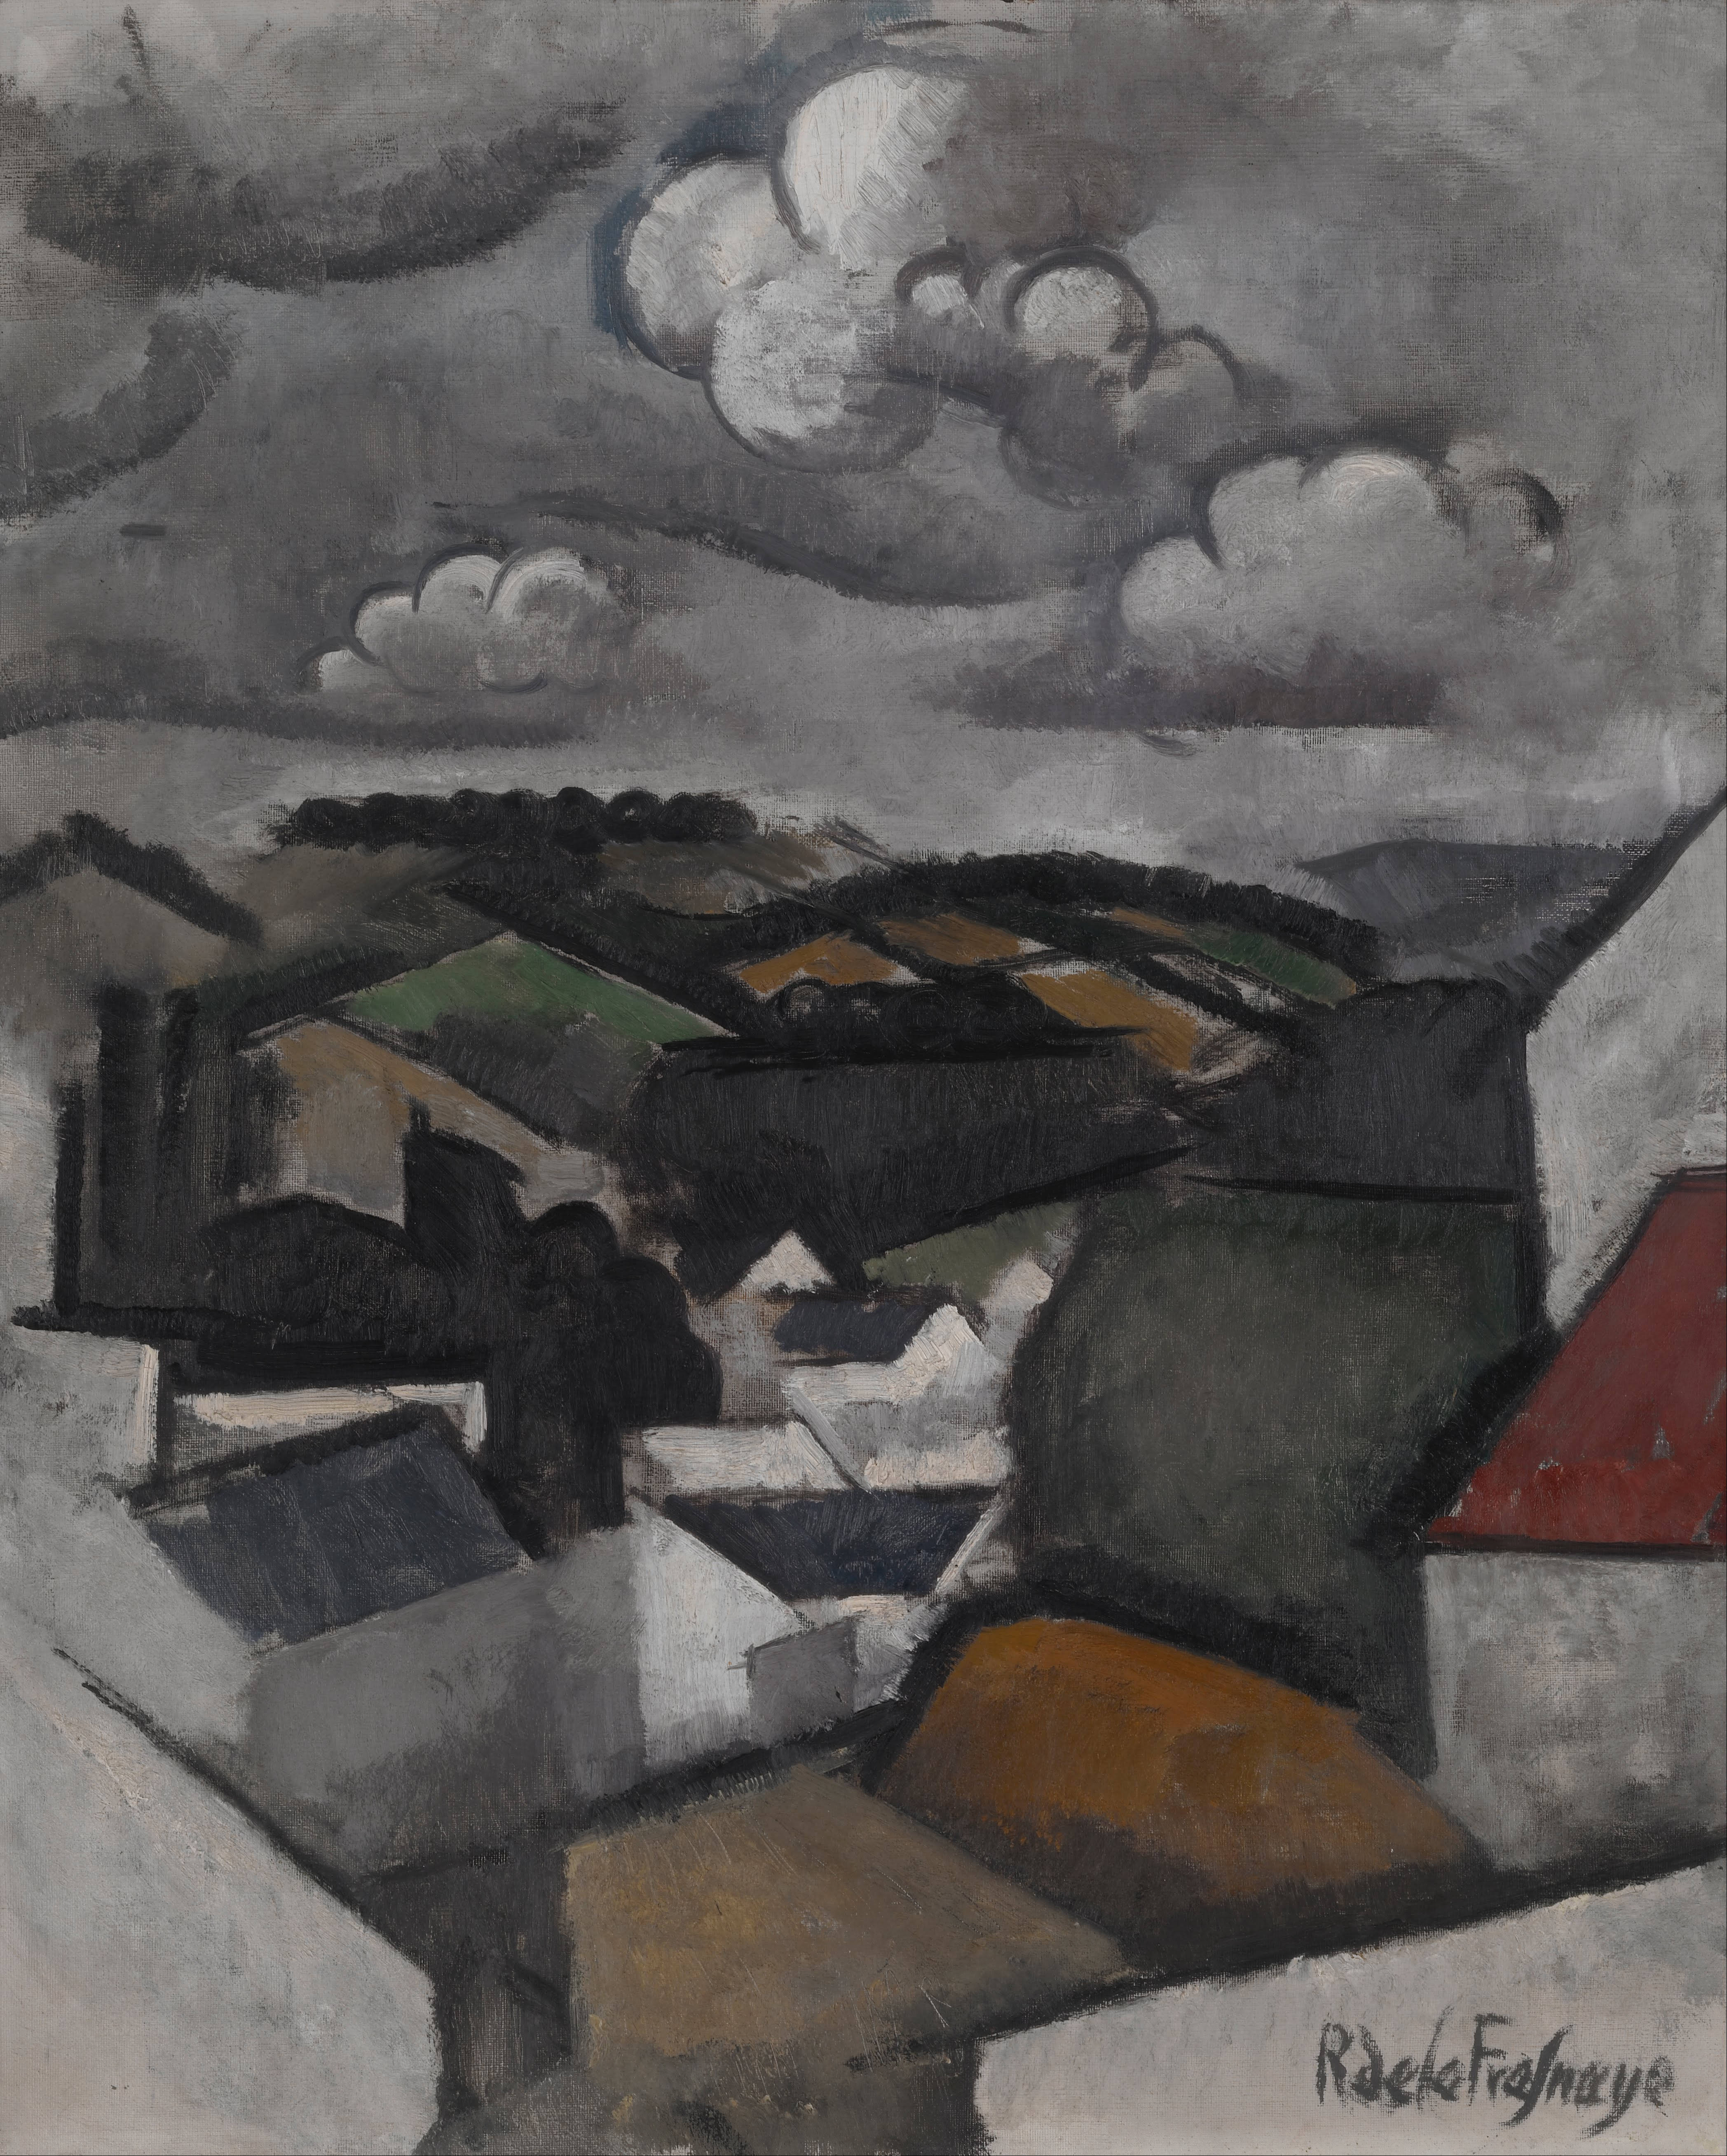 What Type Of Oil >> File:La Fresnaye, Roger de - Landscape with a Village, The